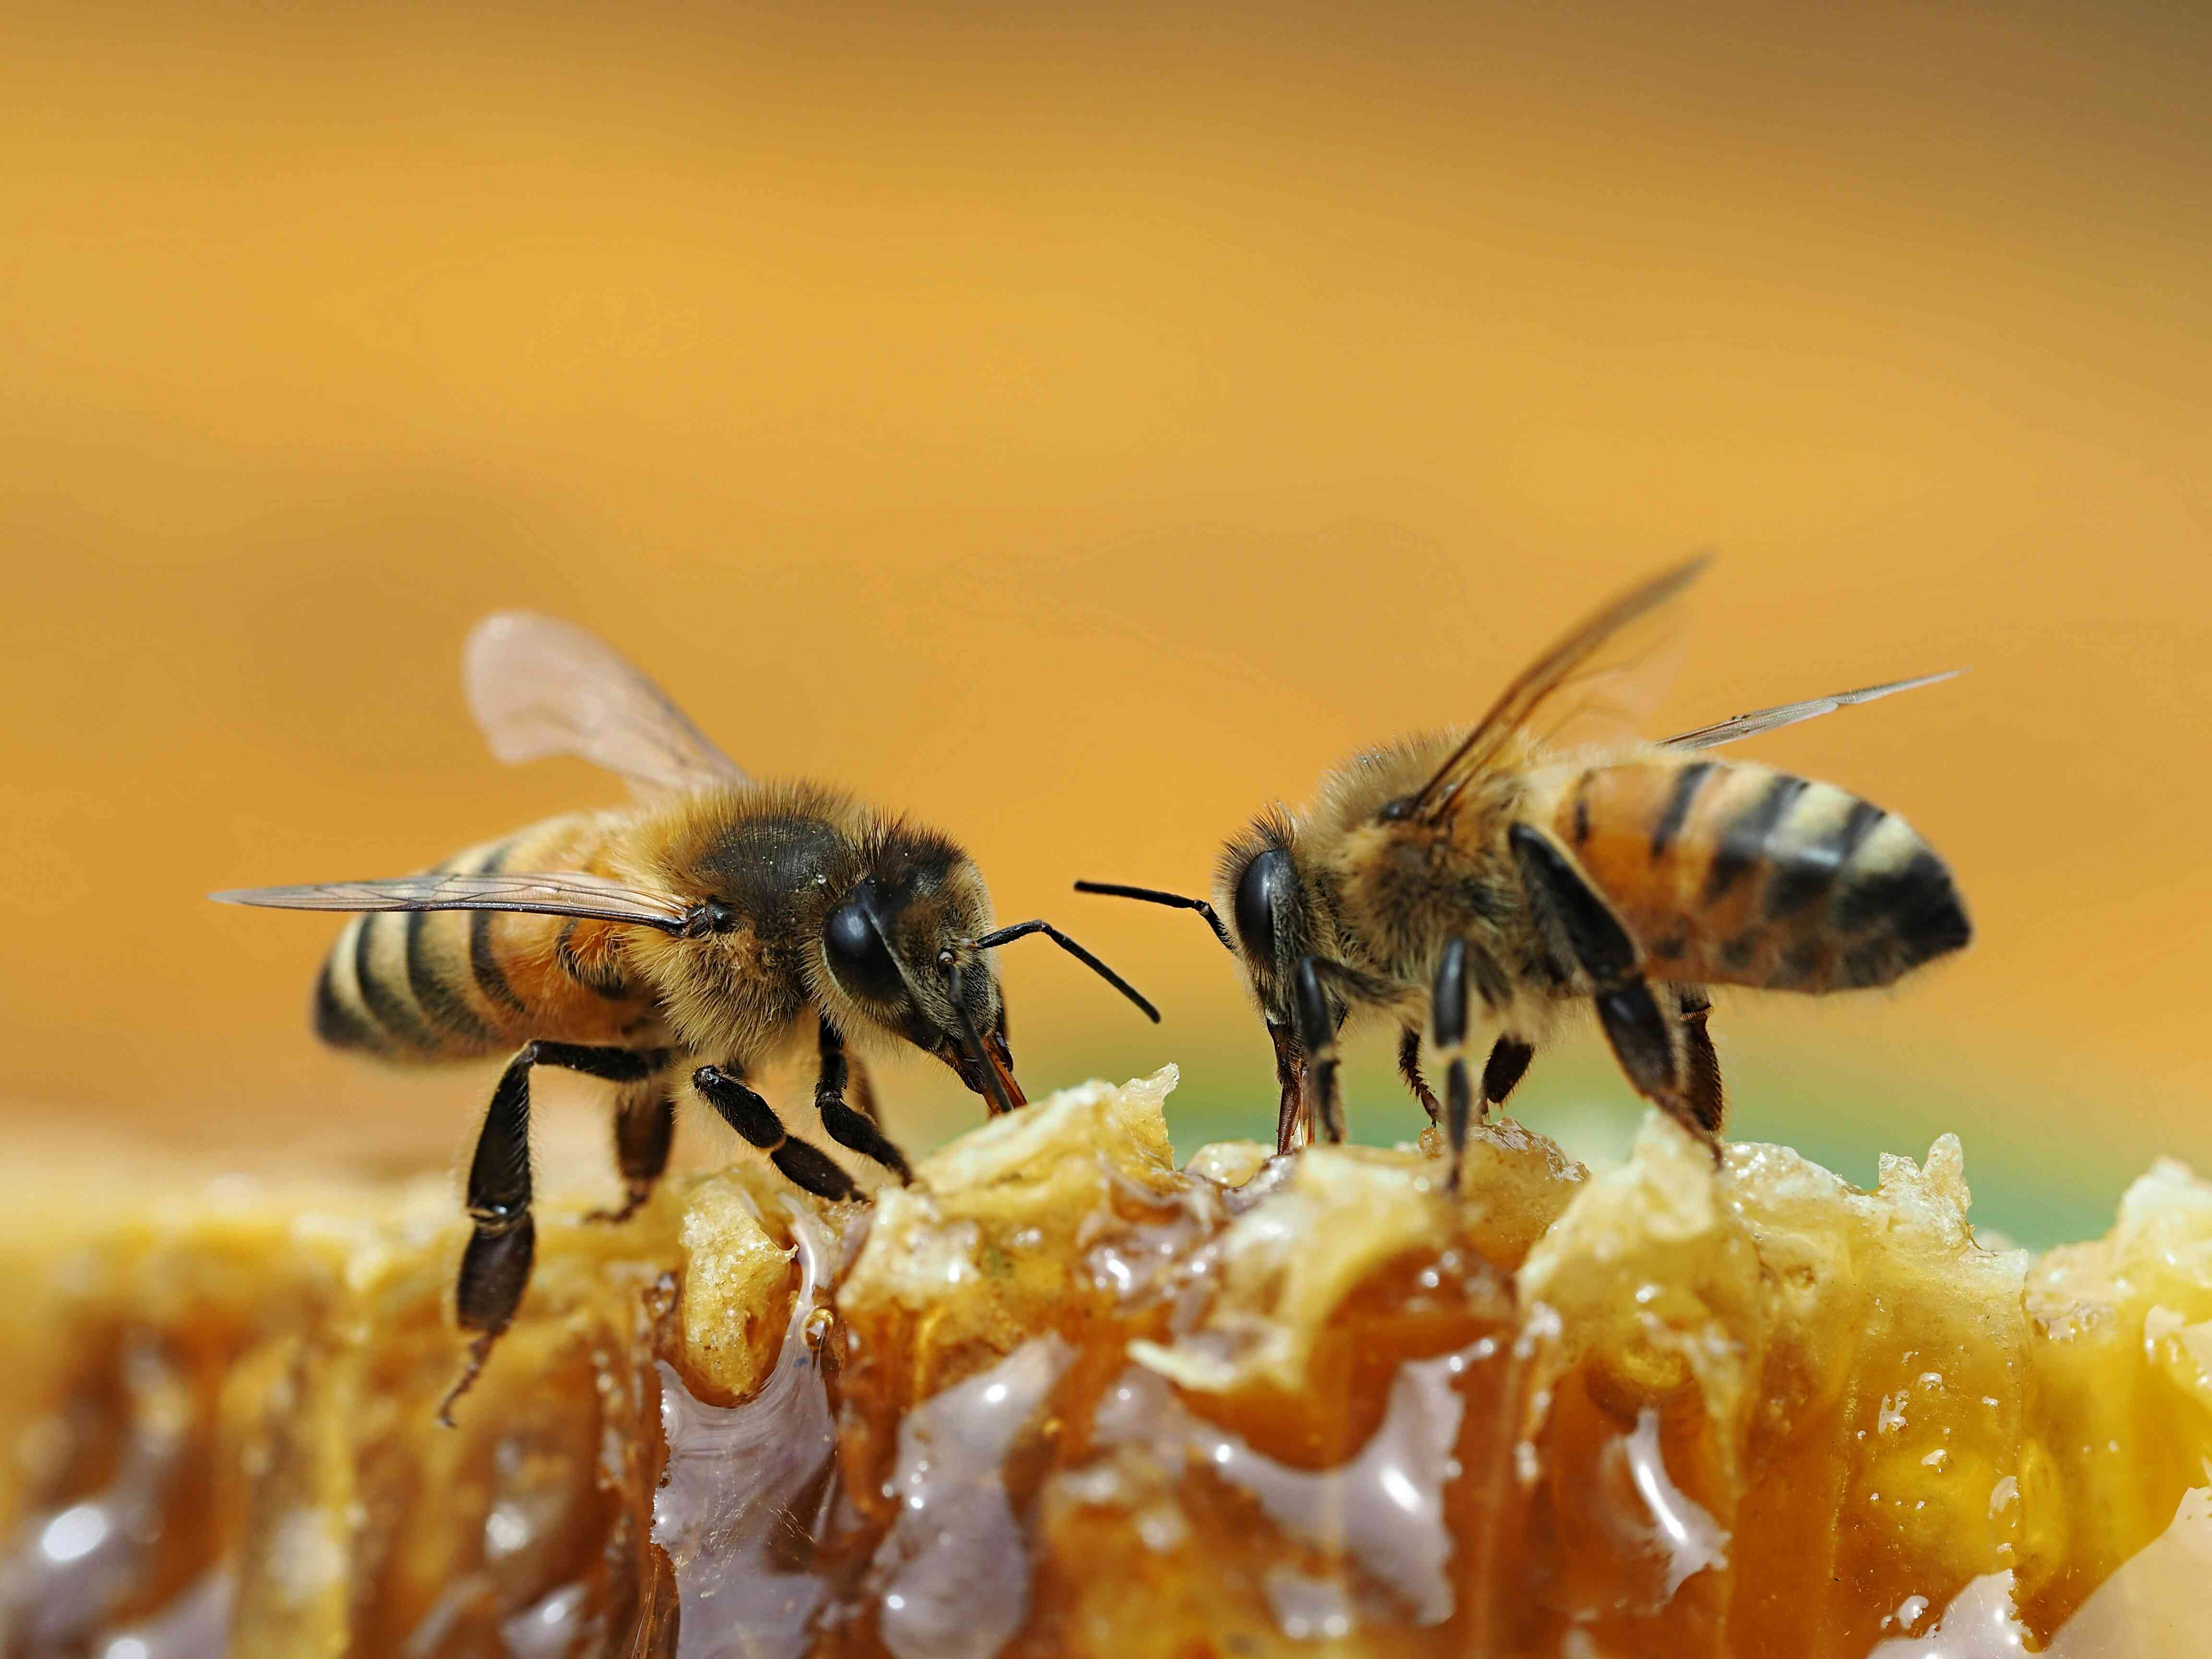 Close-Up Of Bees On Honey